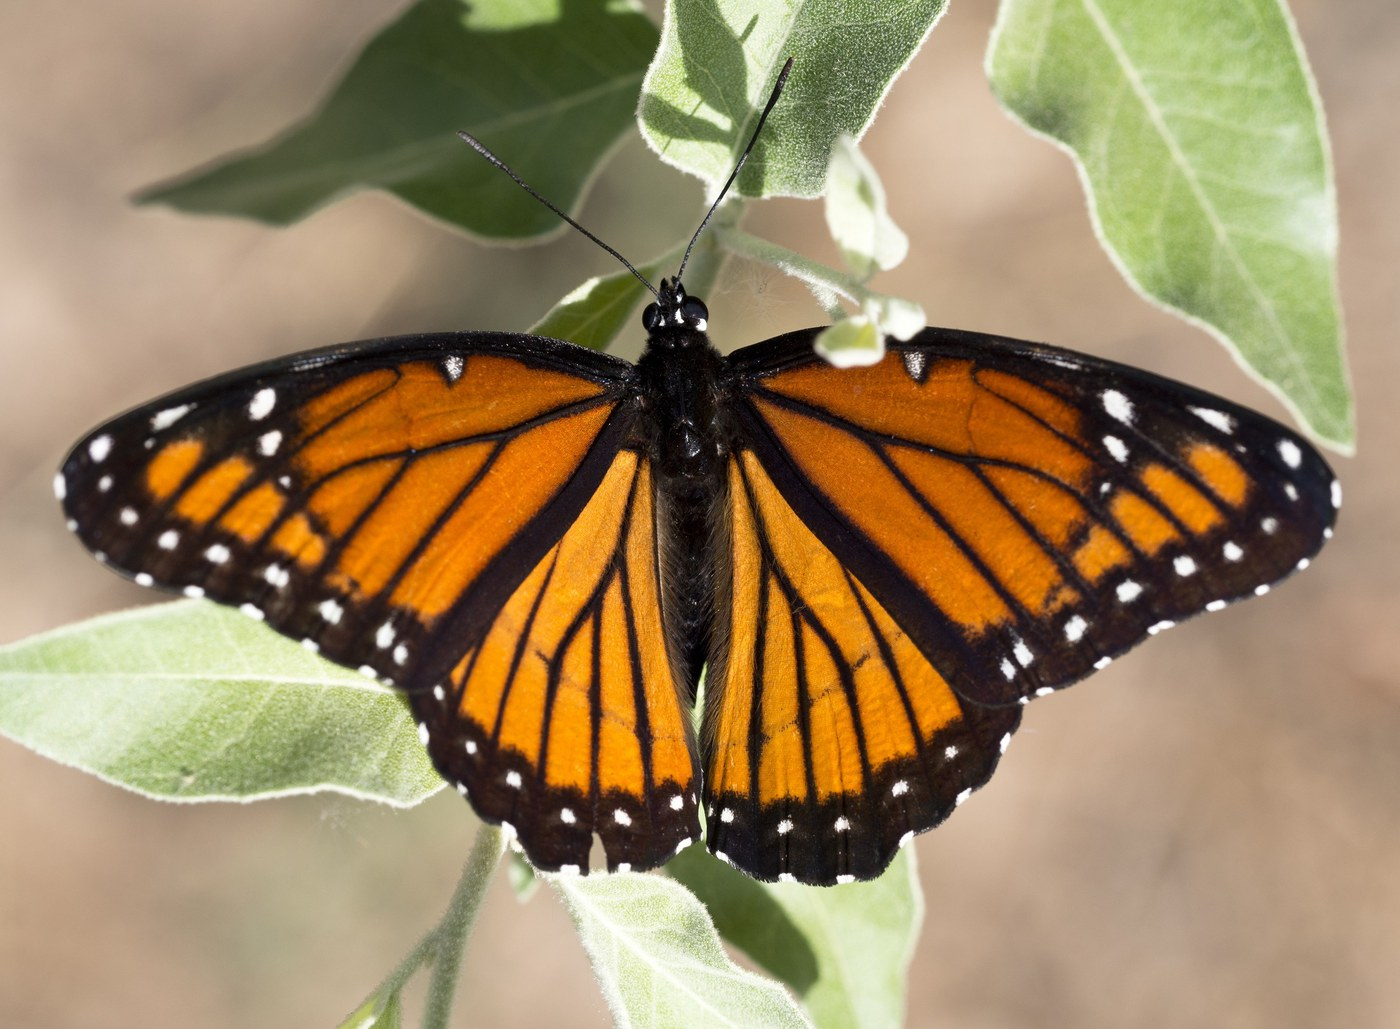 Viceroy butterfly with black hindwing bar. Photo: Pexels.com